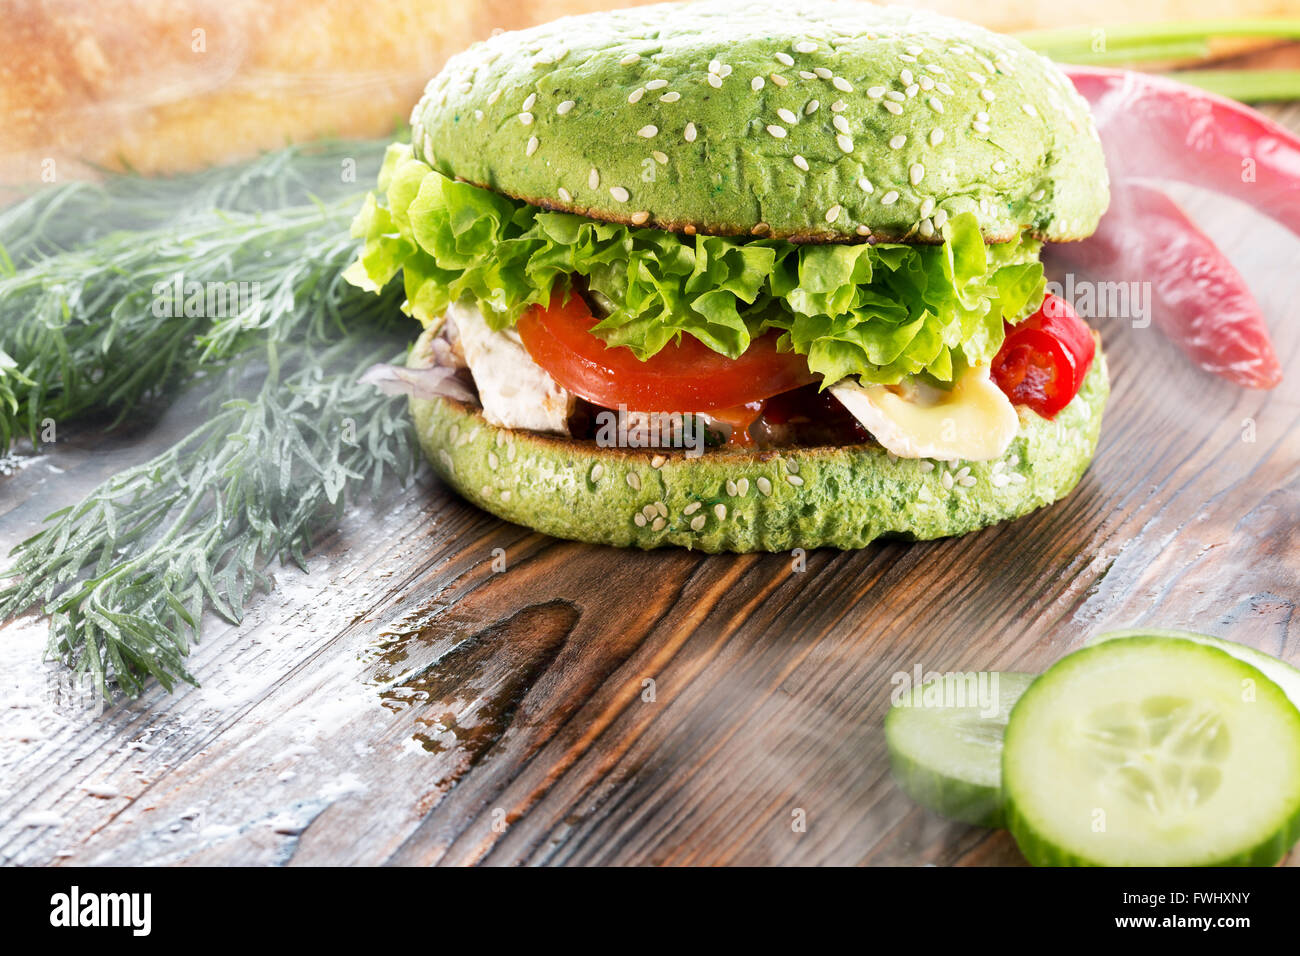 burger with green bun in light smoke on wooden background. - Stock Image